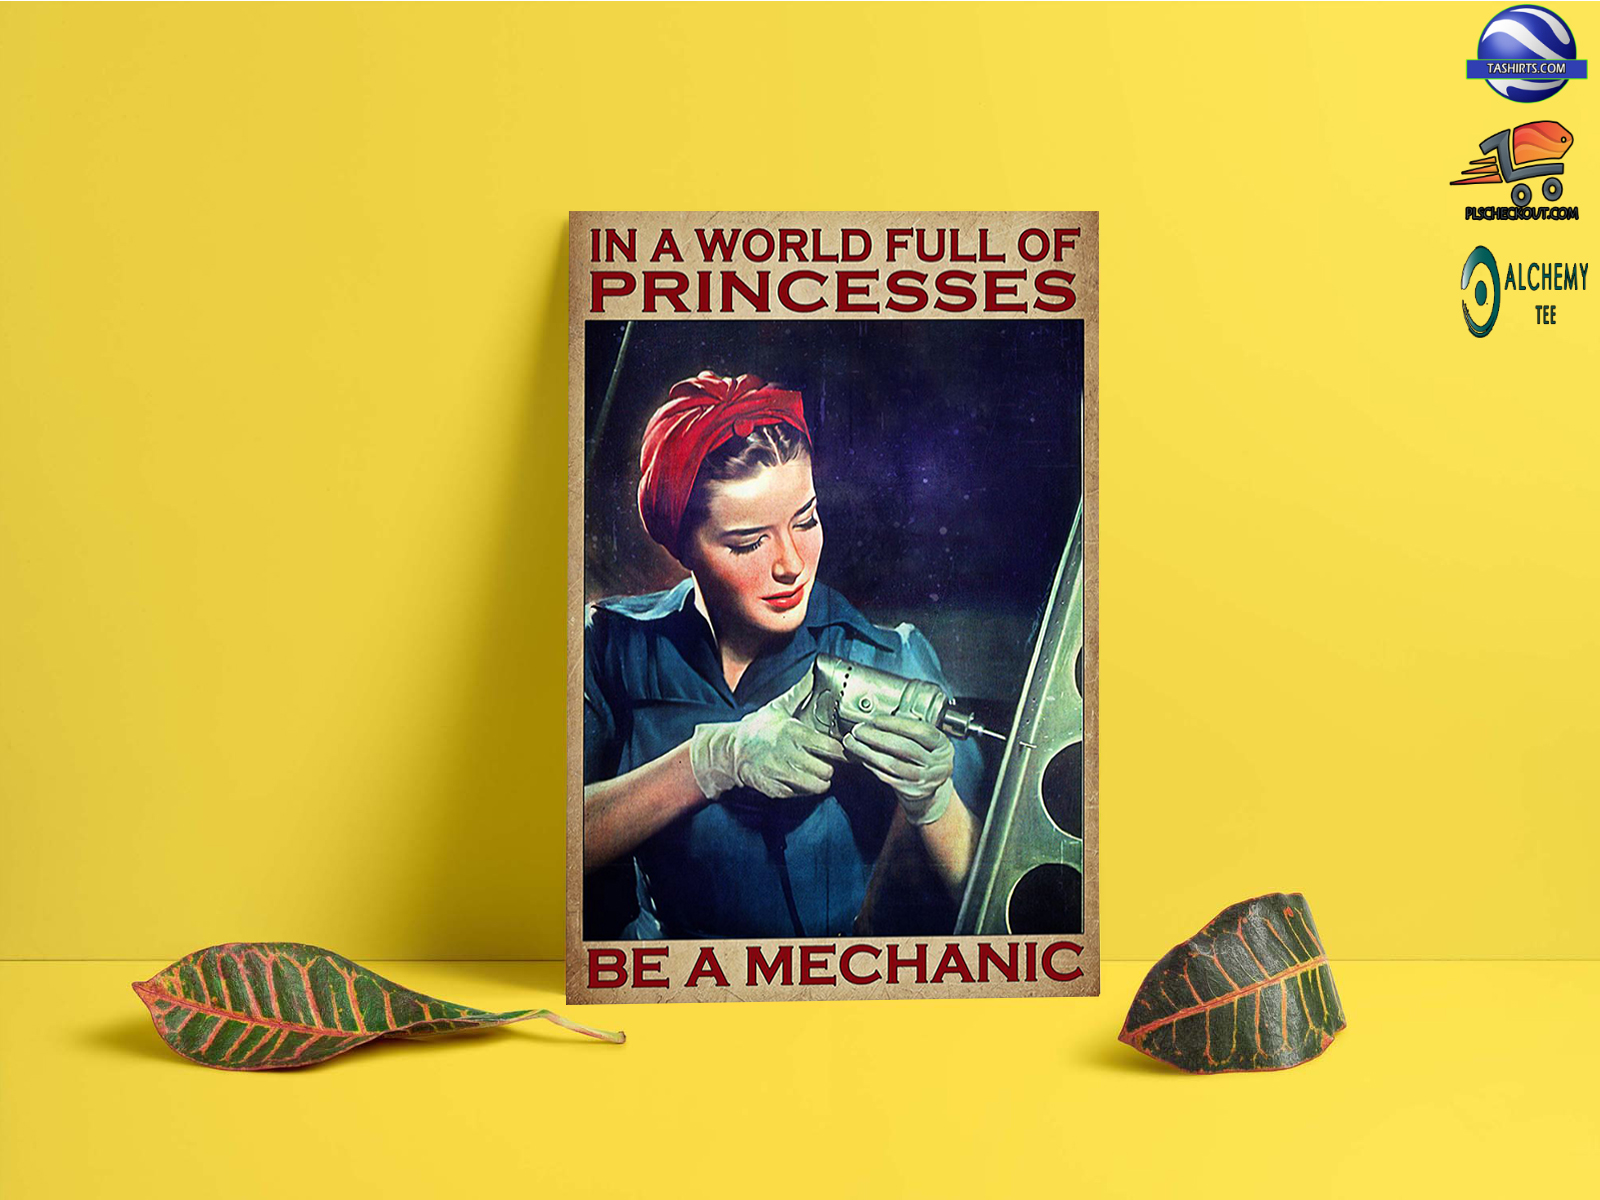 Girl In a world full of princesses be a mechanic poster